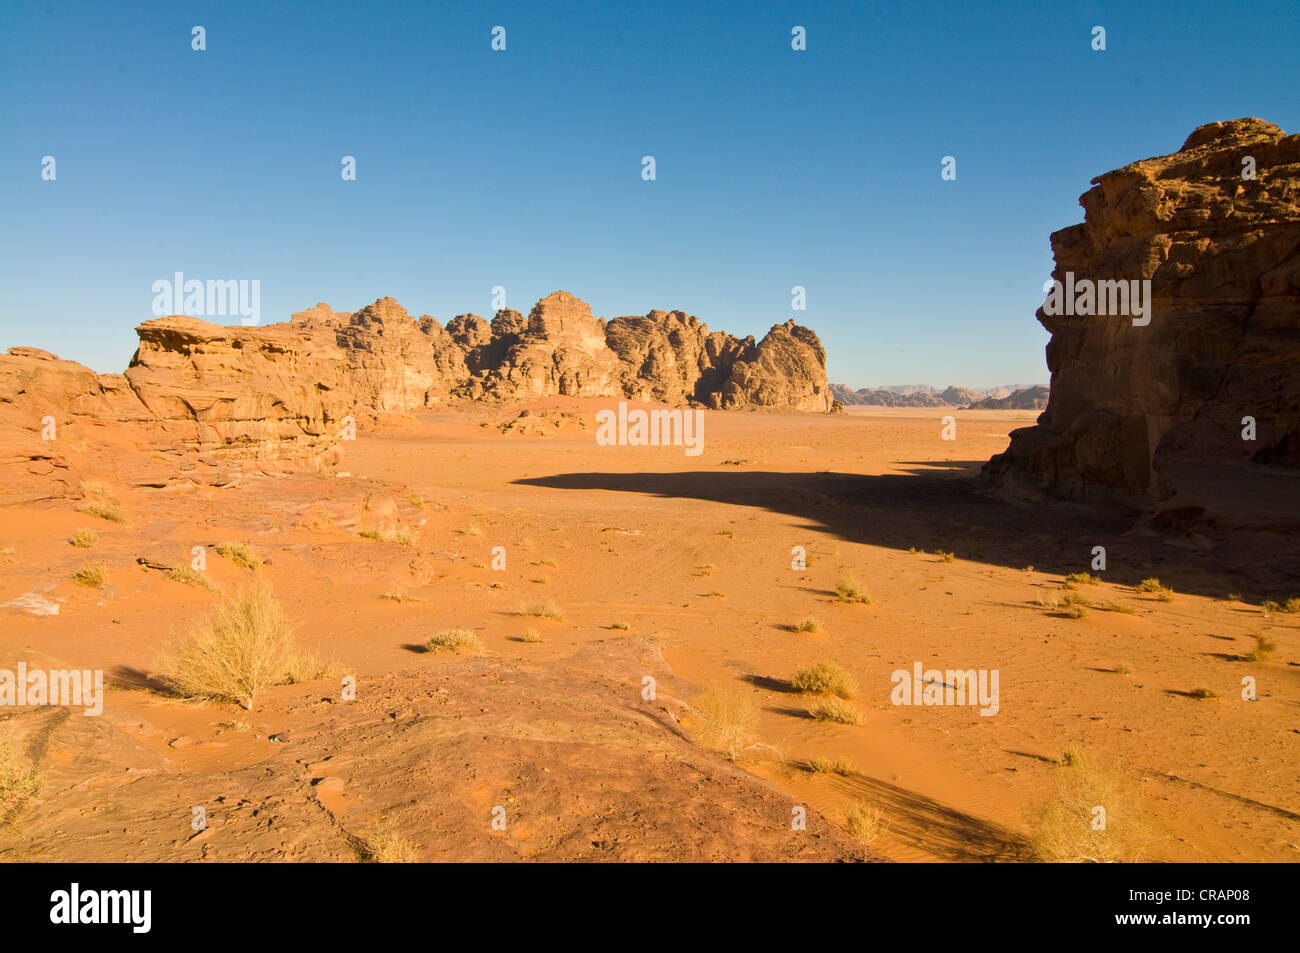 Rocks, desert, Wadi Rum, Jordan, Middle East - Stock Image